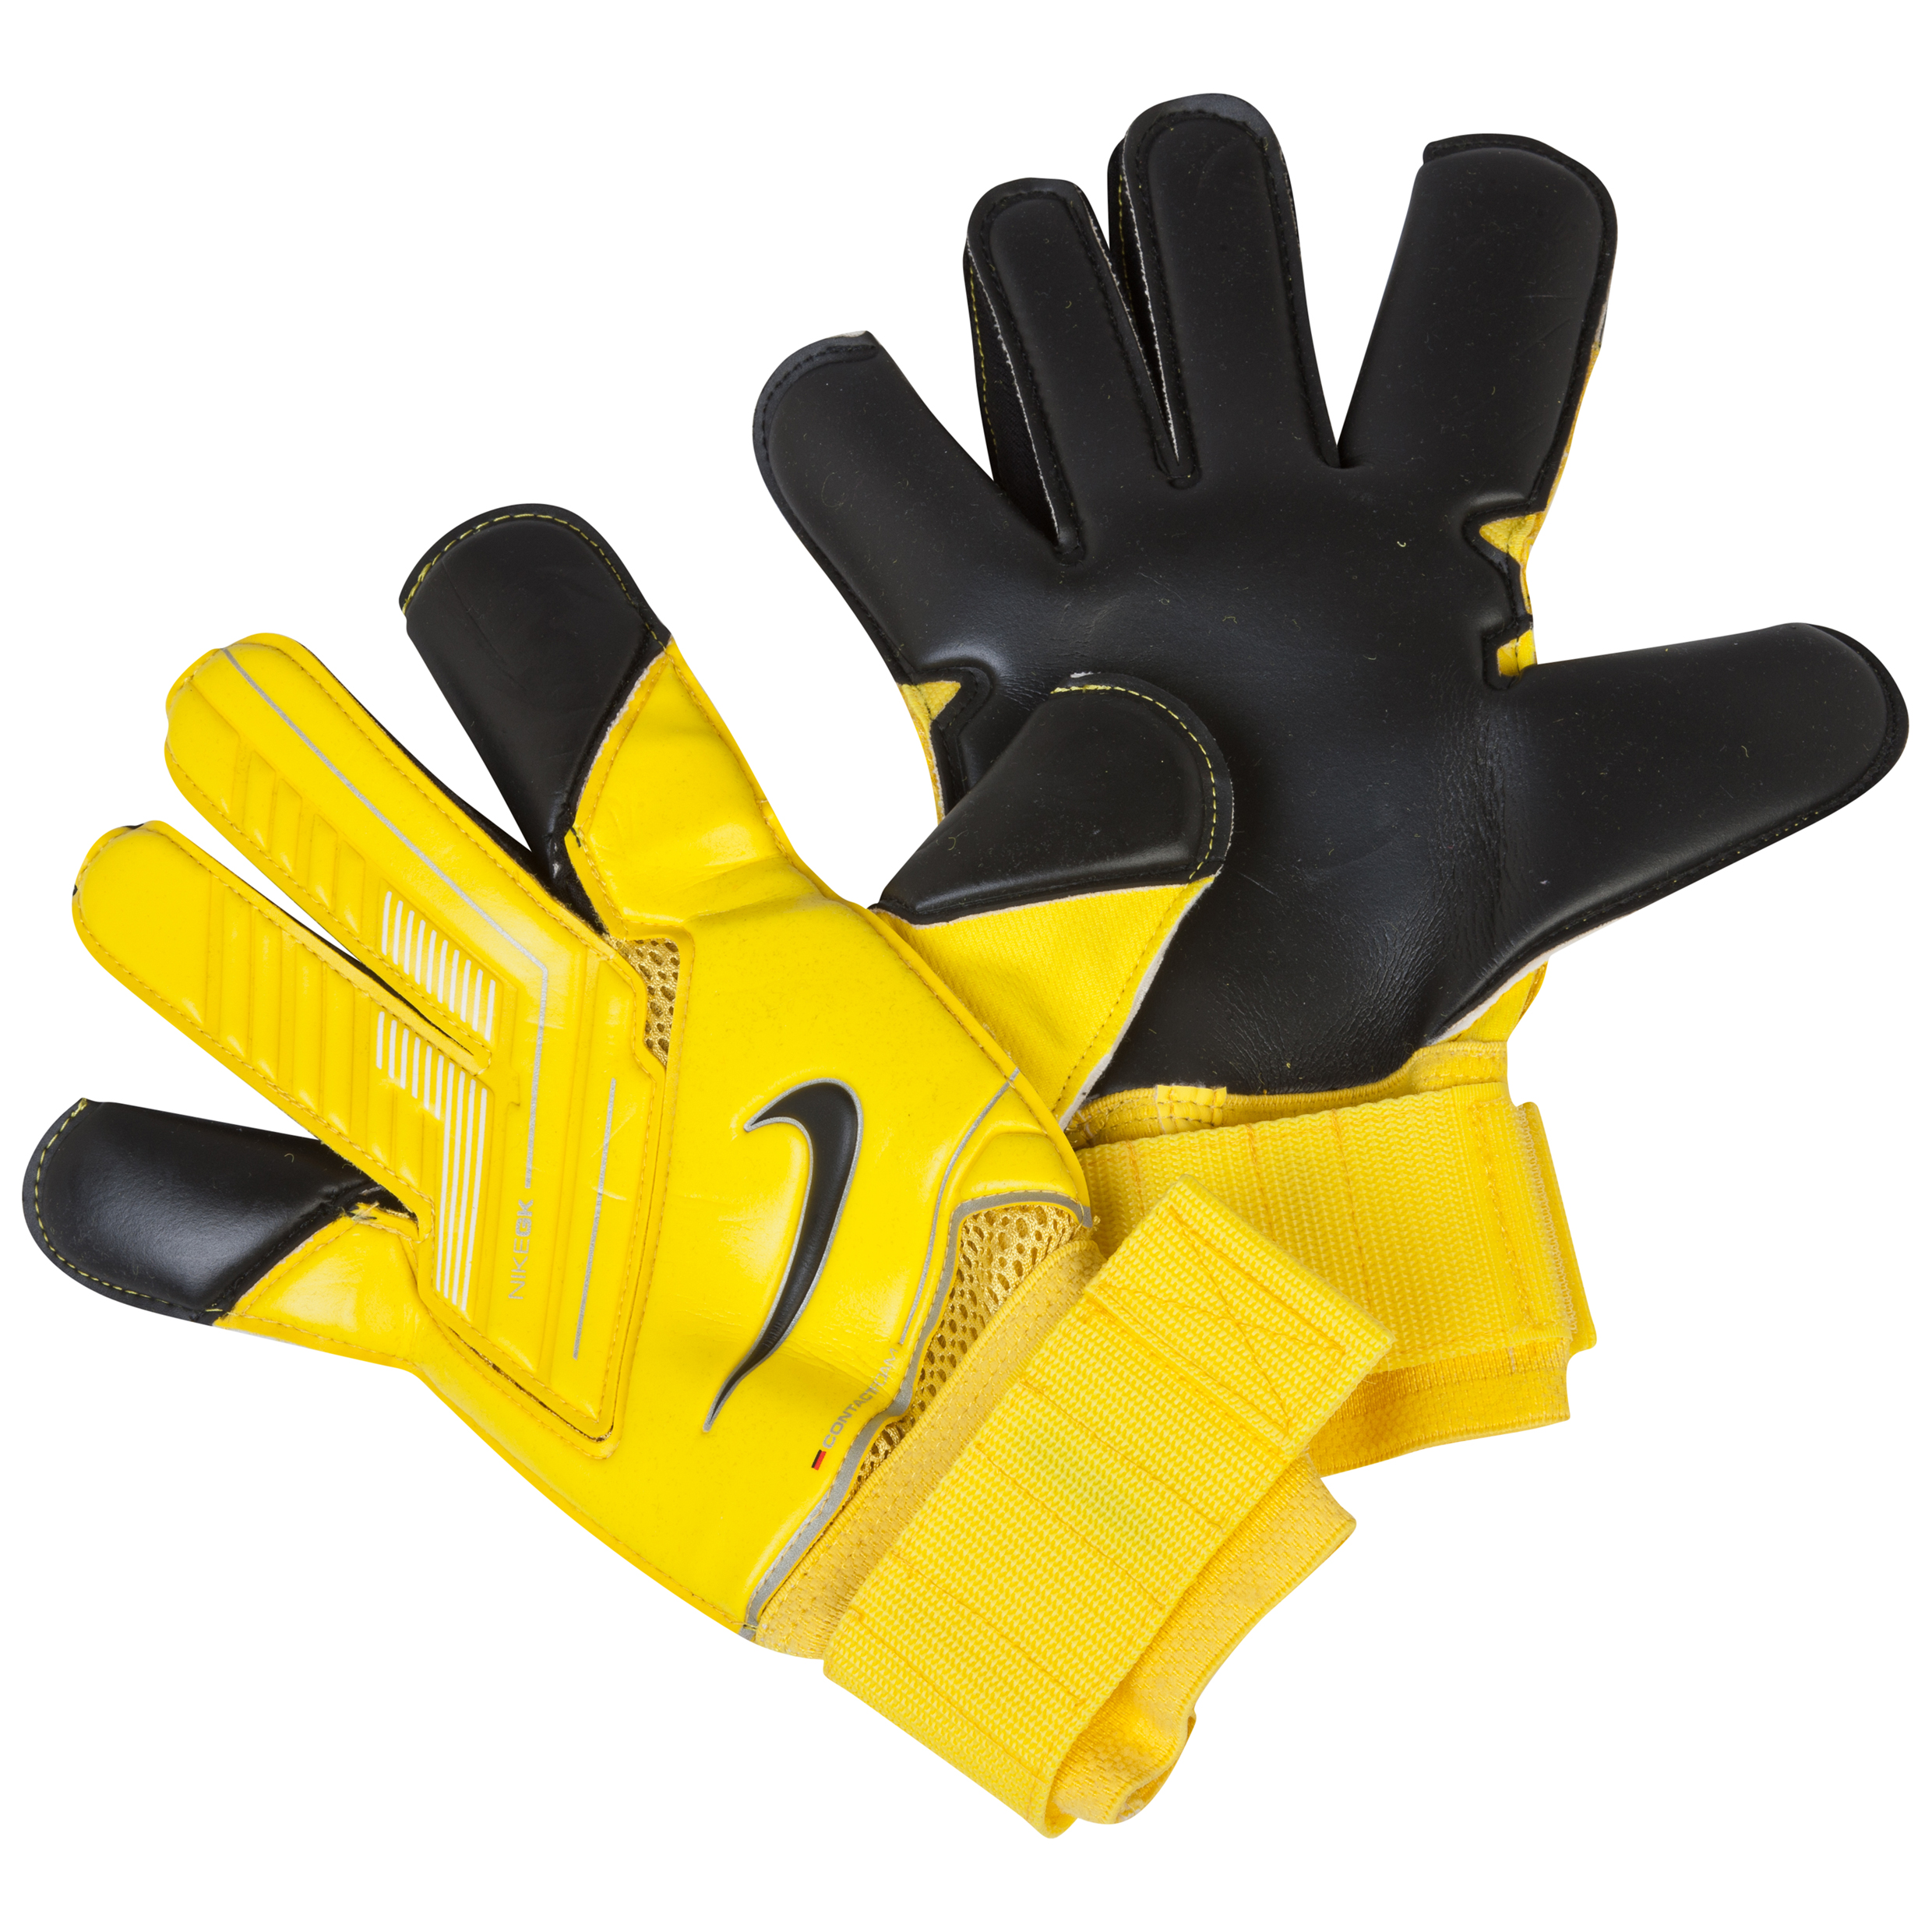 Nike Vapor Grip 3 Goalkeeper Gloves Yellow